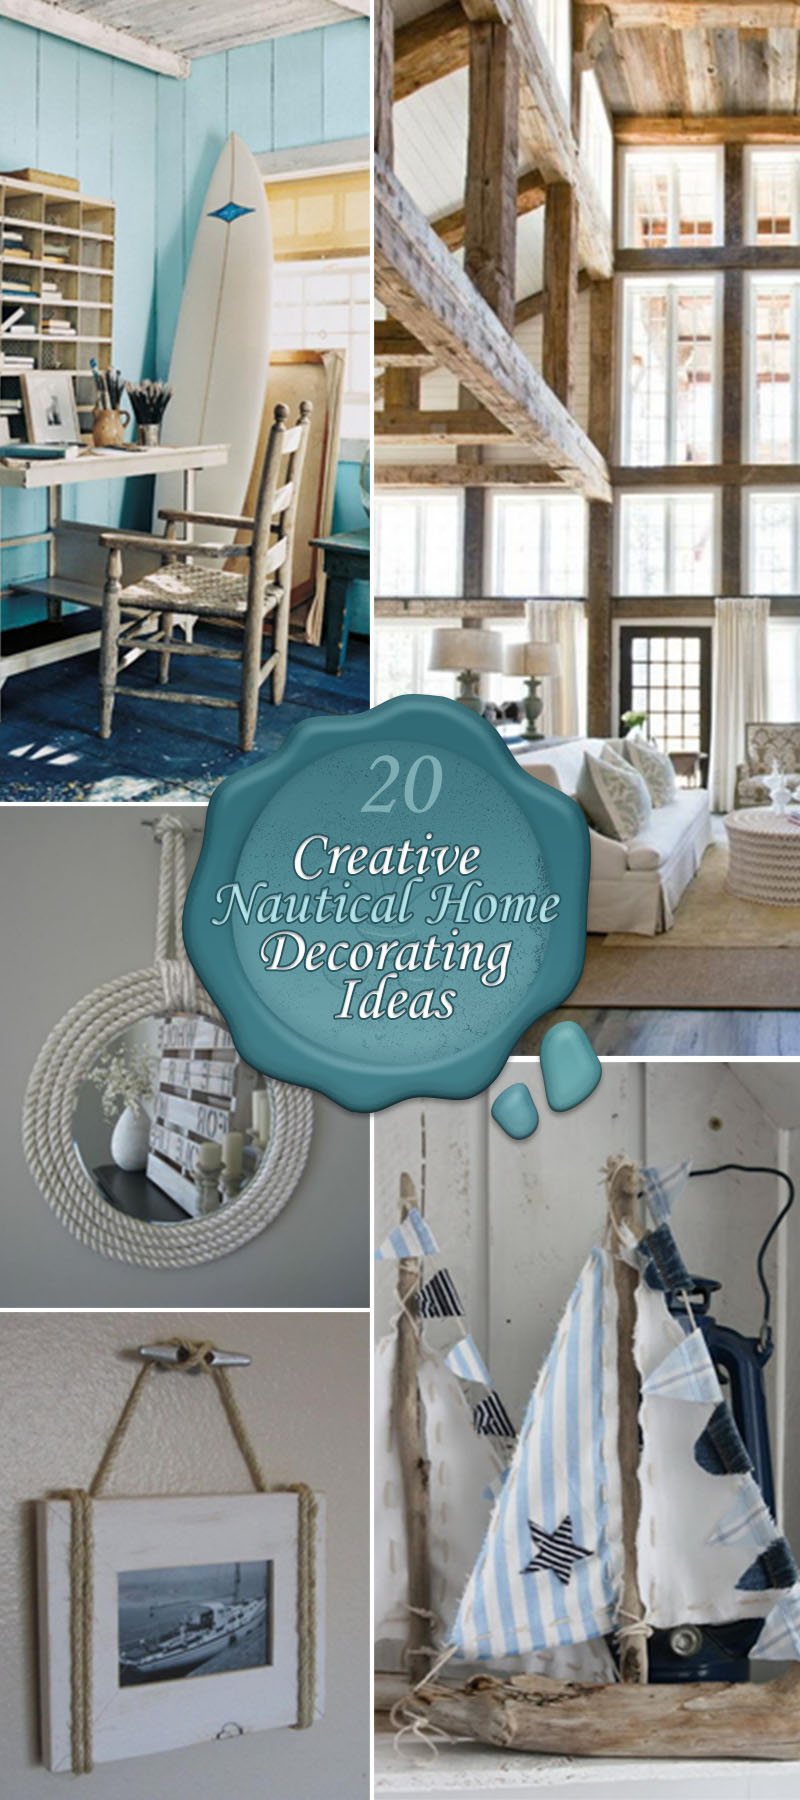 20 Creative Nautical Home Decorating Ideas - Hative